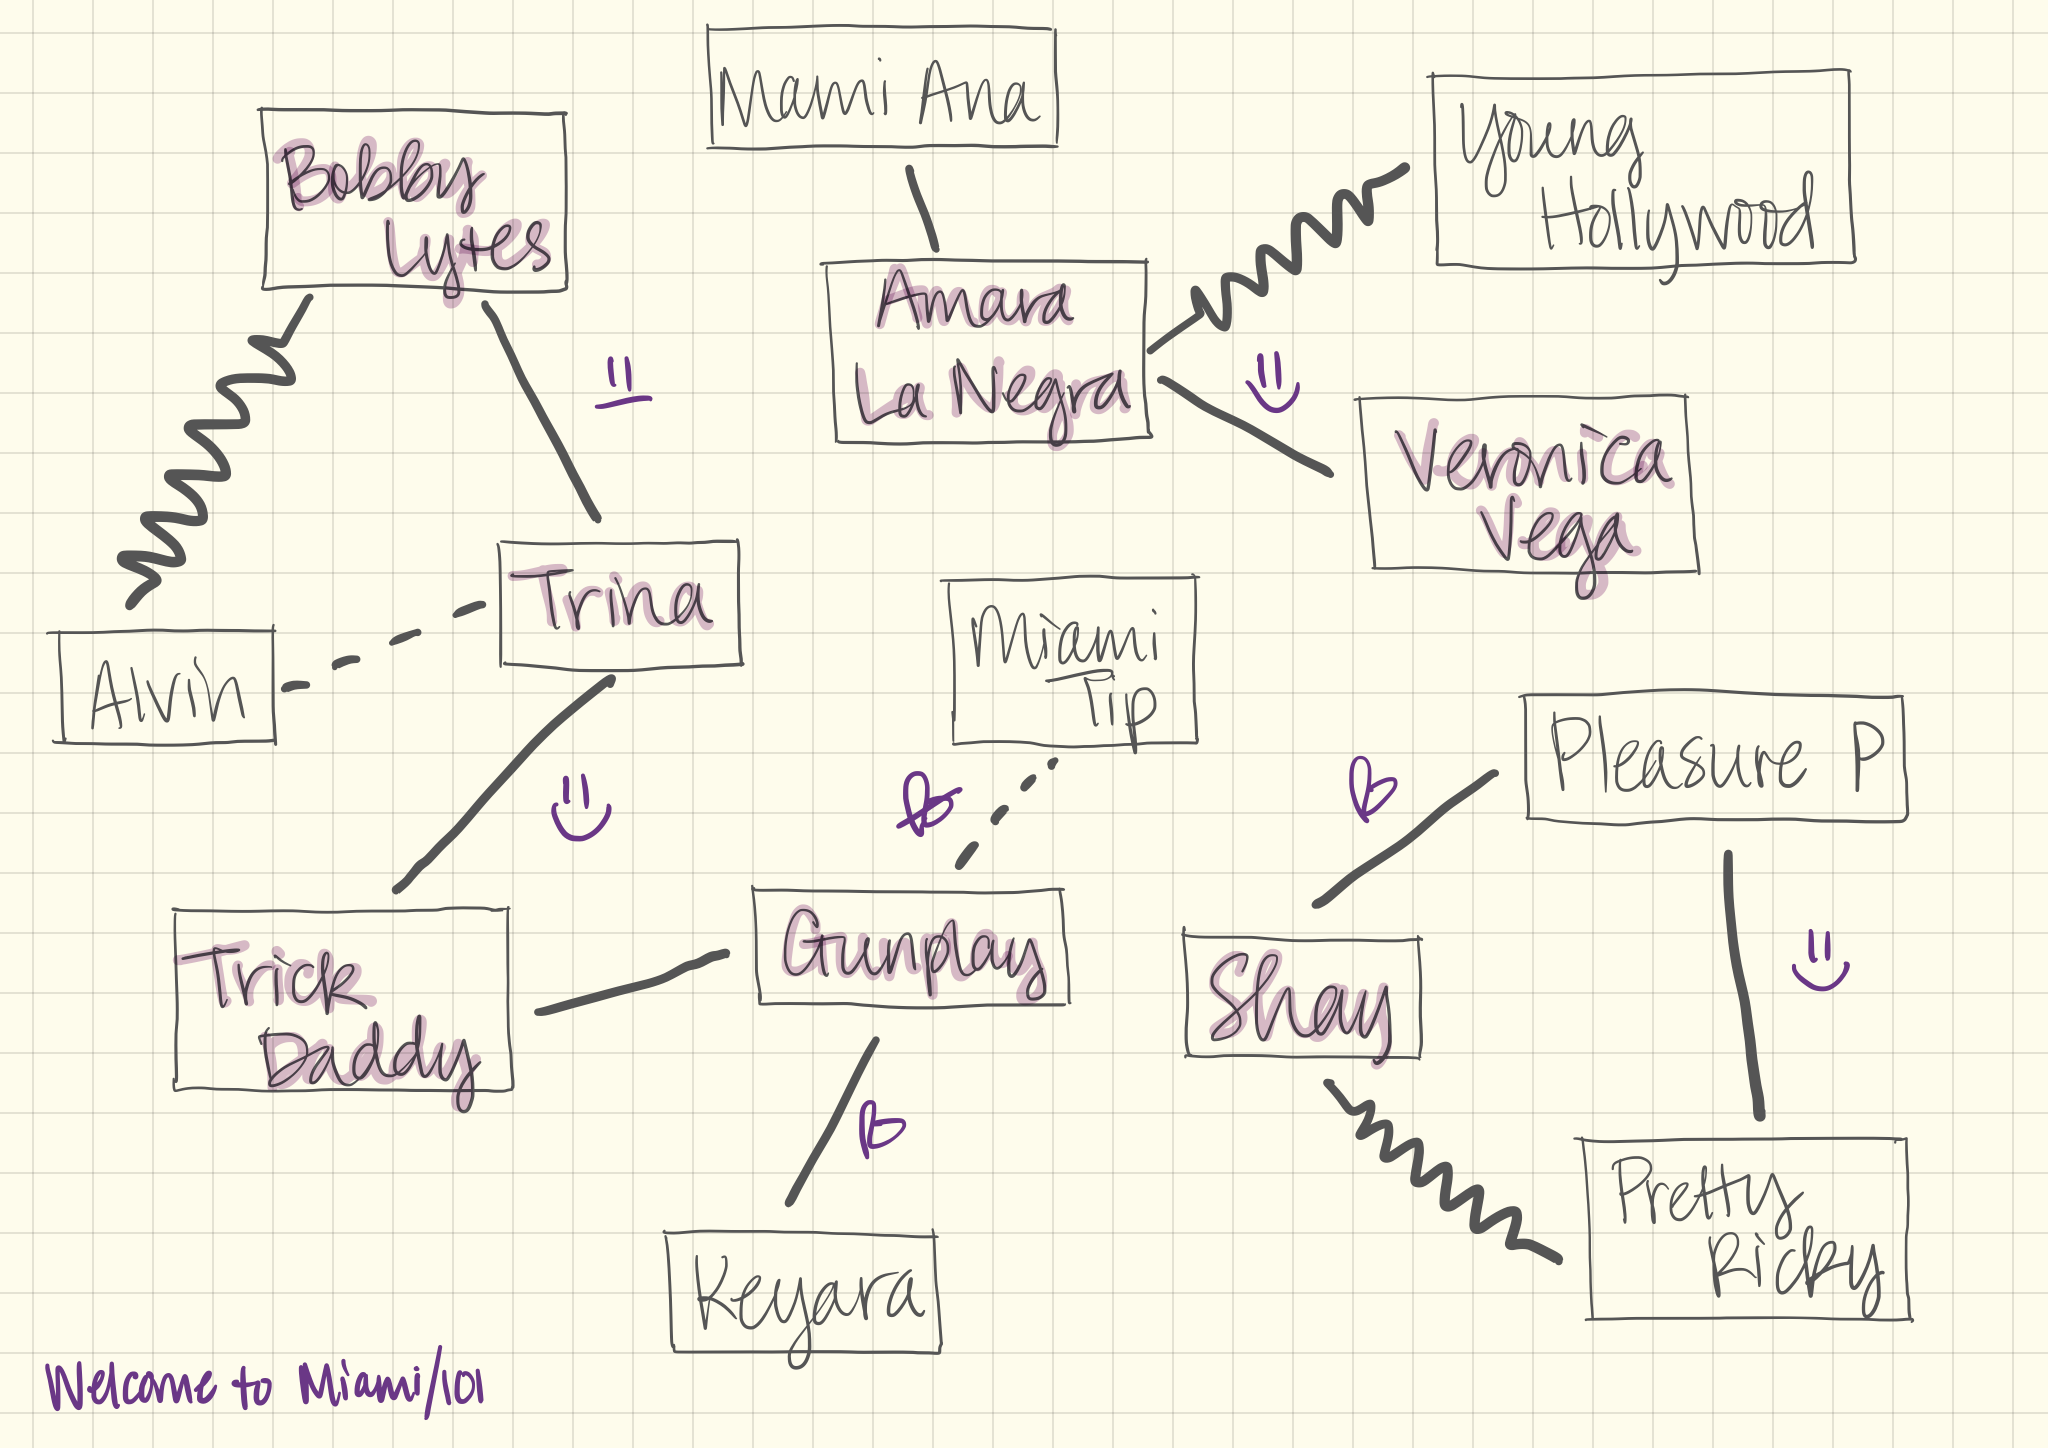 Love and Hip Hop Mess Maps : This is a very messy show in so many ways. I'm going to try to keep track of the ways everybody is connected. Each Mess Map includes people who appeared on the episode, with main cast members highlighted.